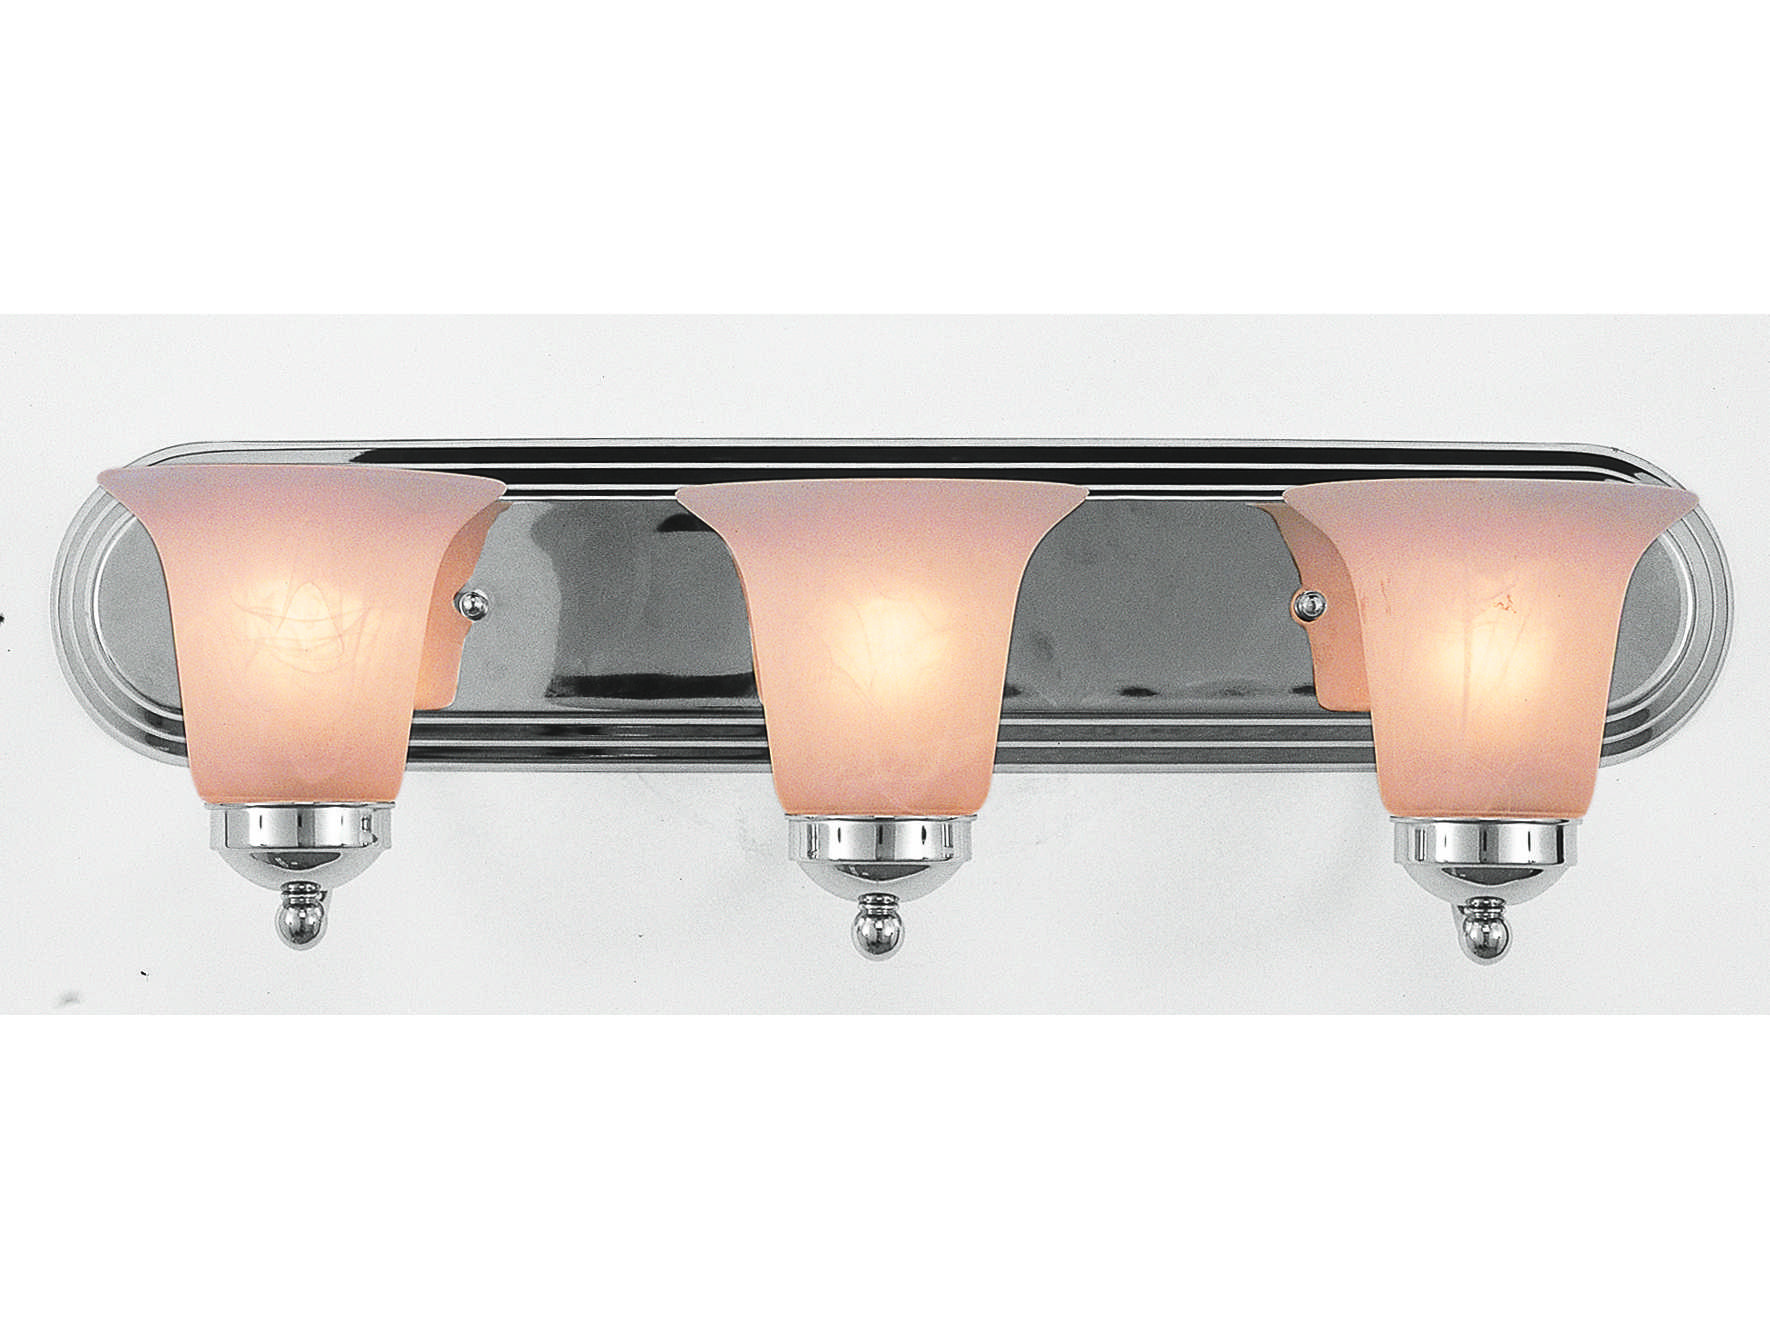 Trans Globe Lighting Remodel Projects Polished Chrome Three-Light Vanity Light PL-3503-PC